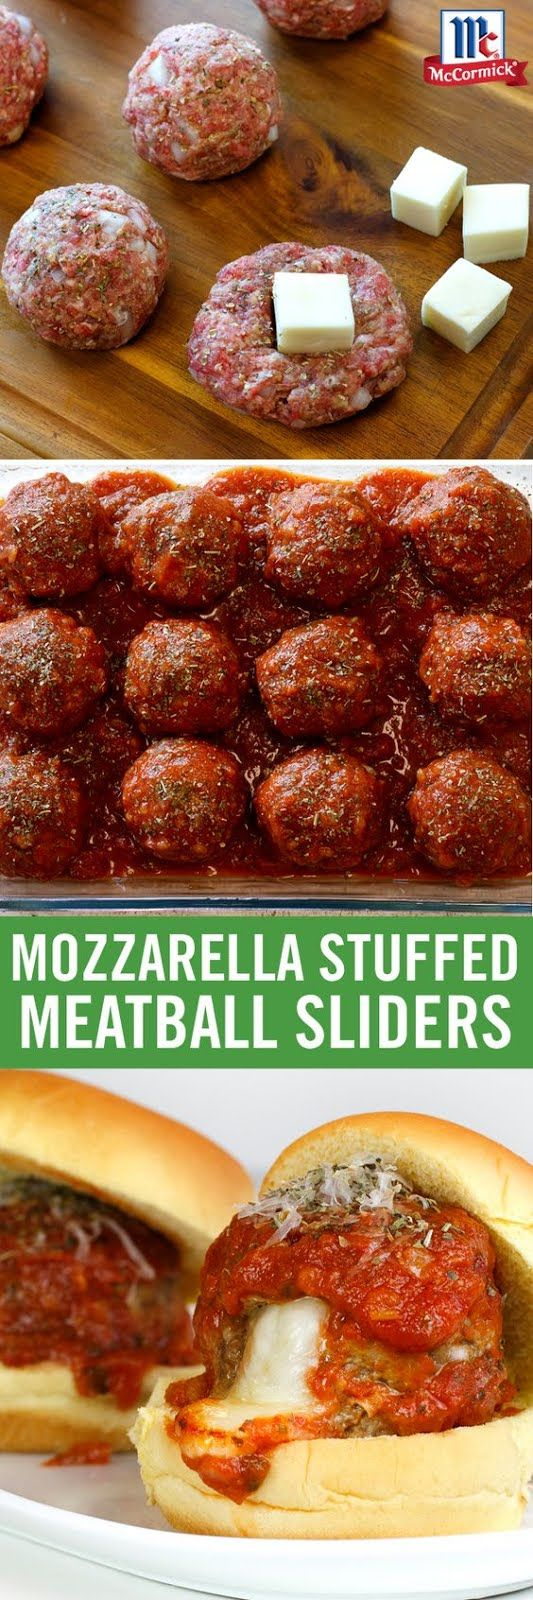 Mozzarella Stuffed Meatball Sliders